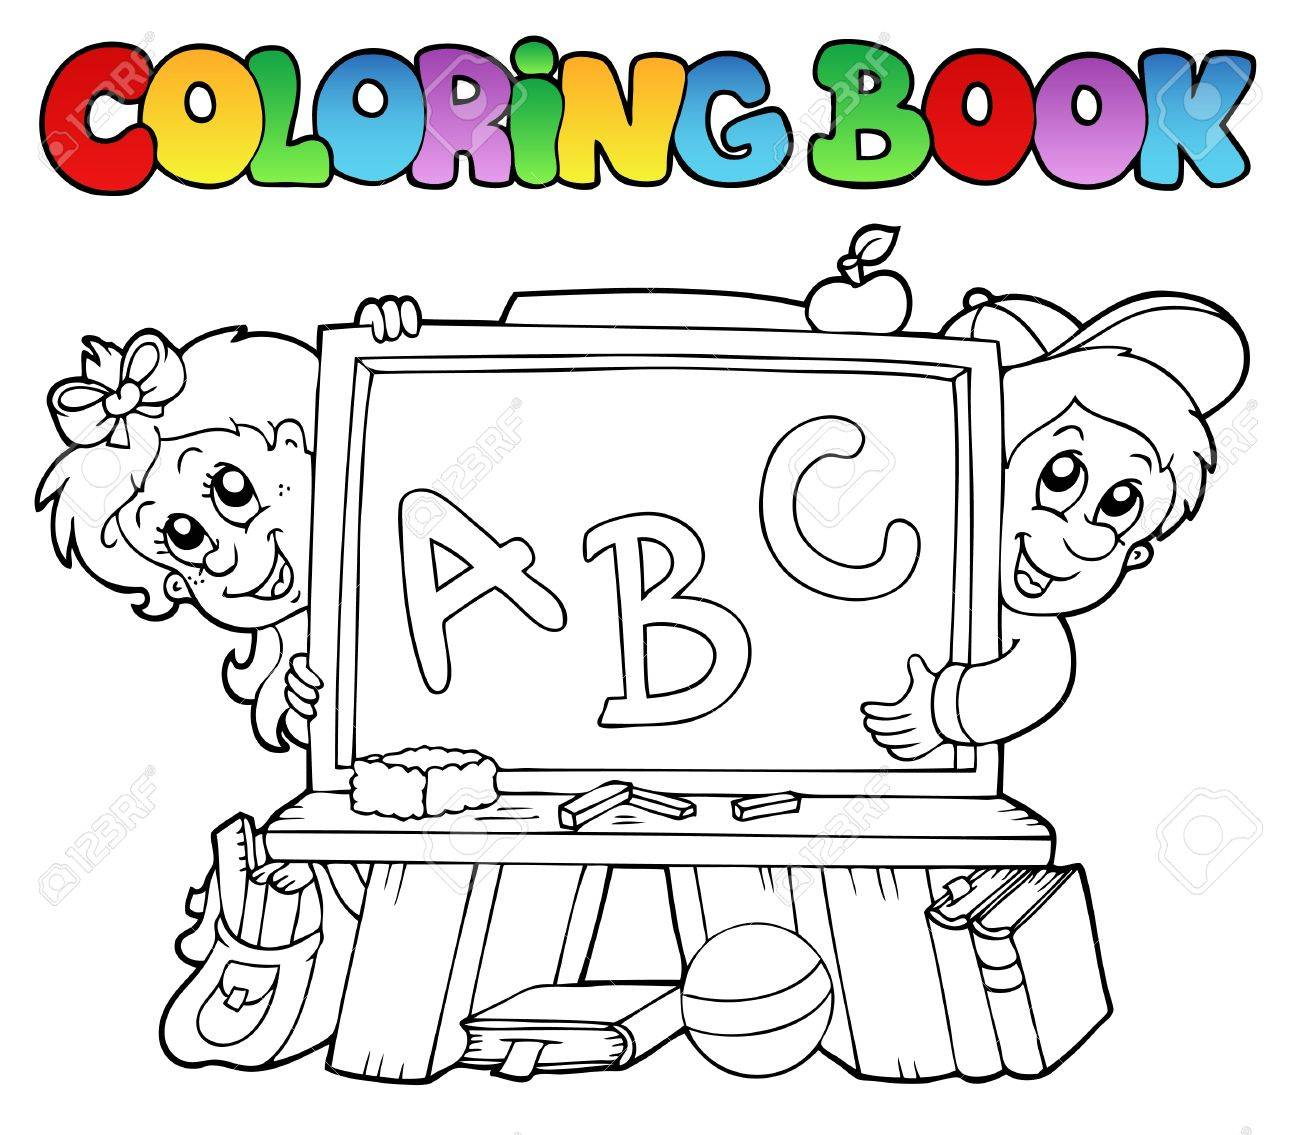 Coloring book school - Coloring Book With School Images Illustration Stock Vector 8350128